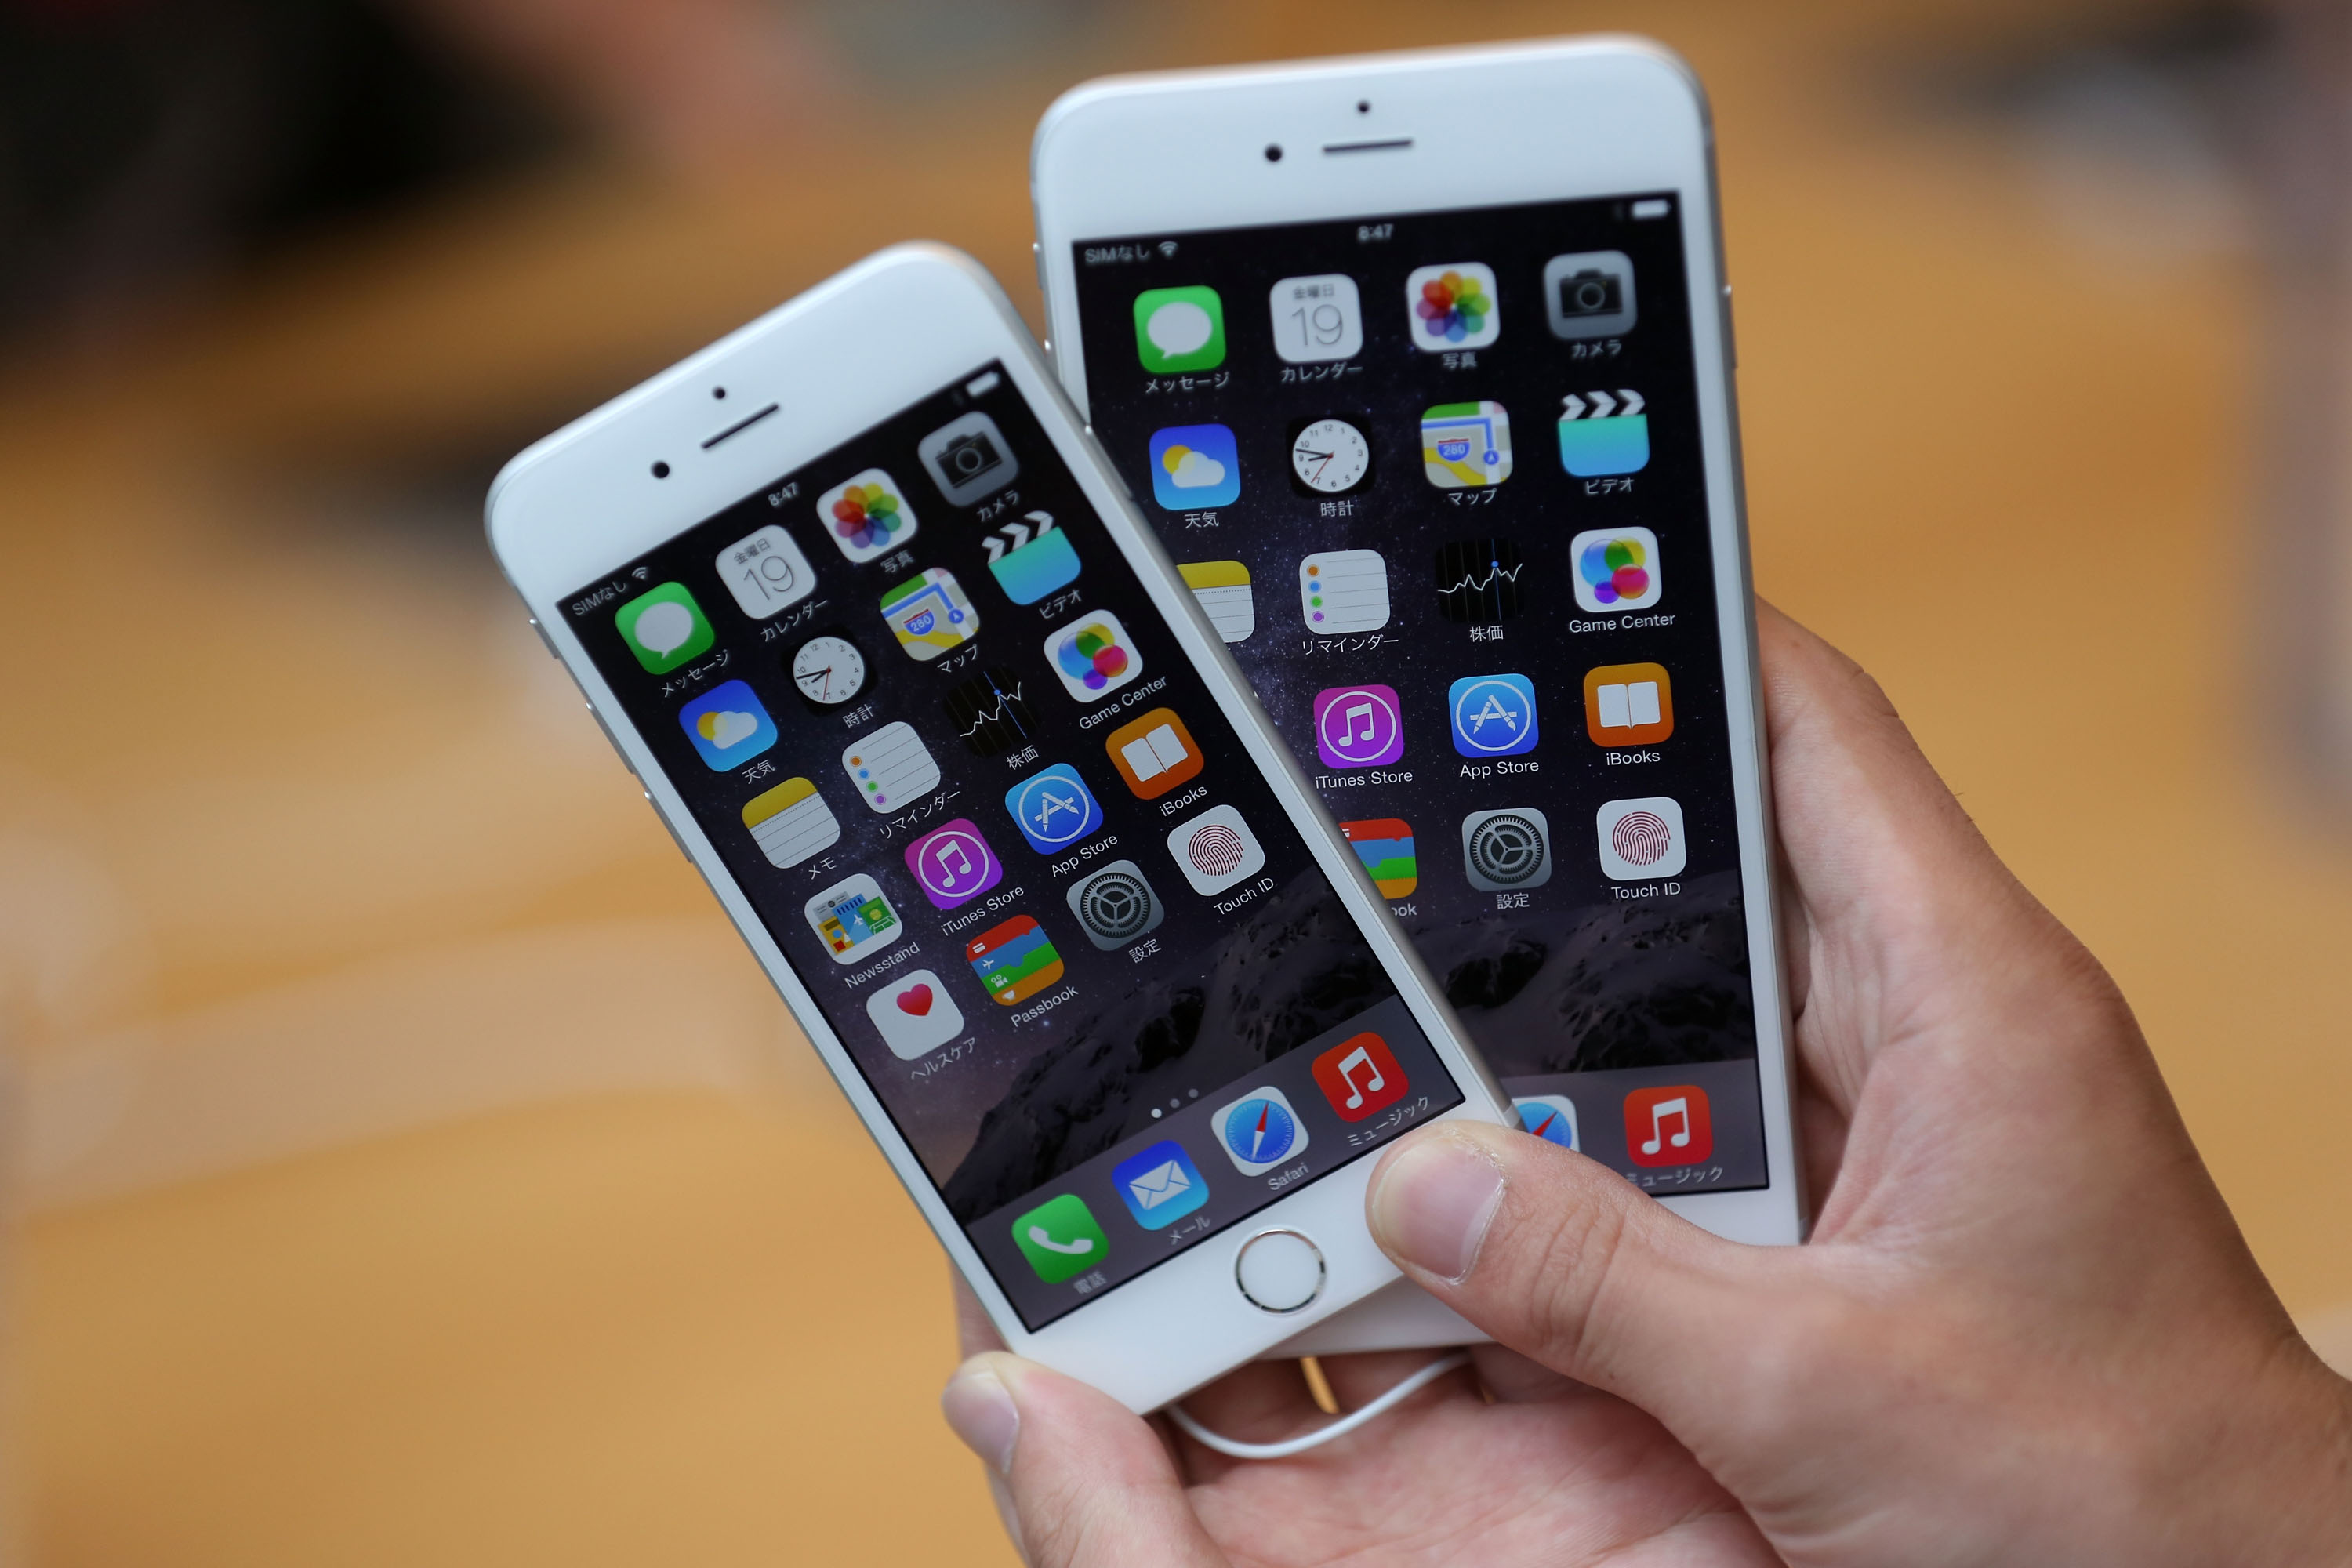 A member of the press compares the new iPhone models at the launch of the new Apple iPhone 6 and iPhone 6 plus at the Apple Omotesando store on September 19, 2014 in Tokyo, Japan.